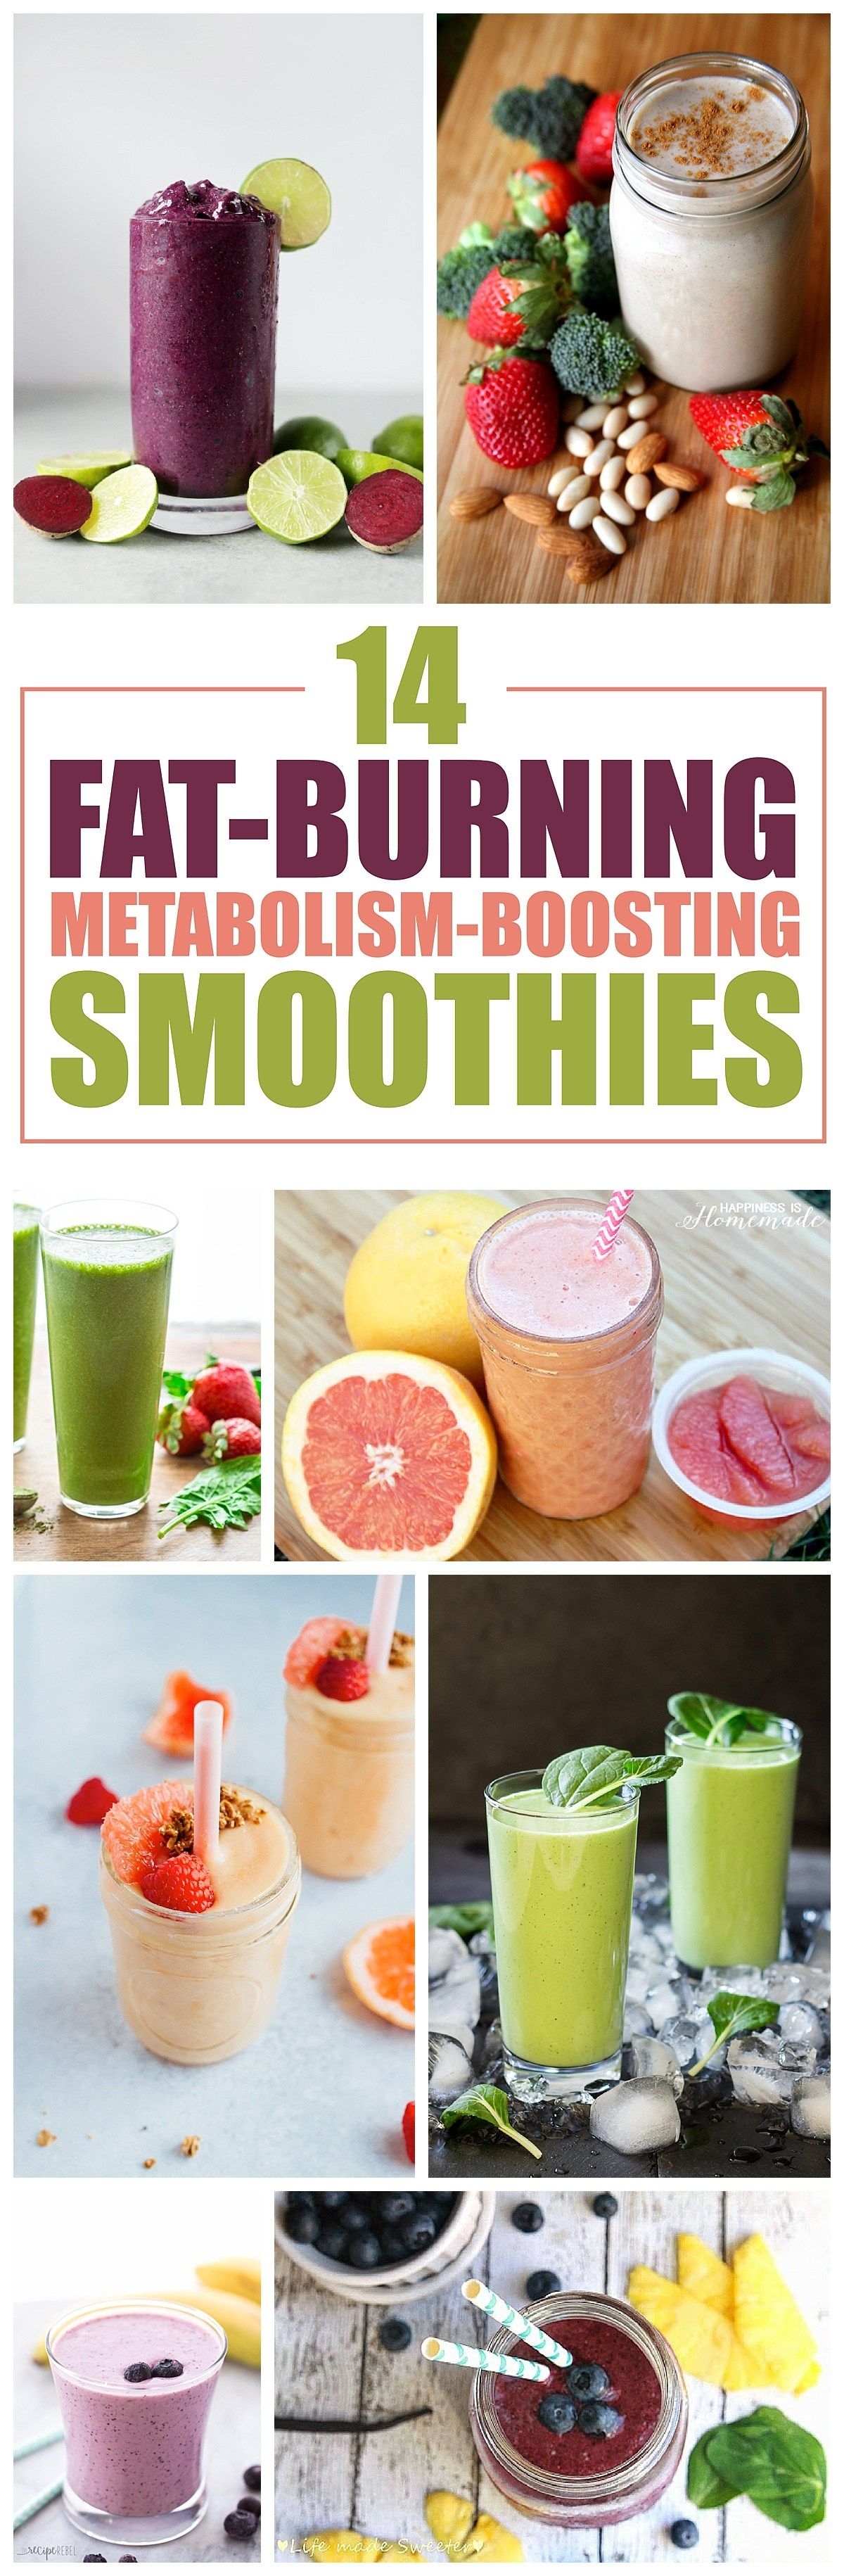 Metabolism Smoothie Fat Burning Smoothie